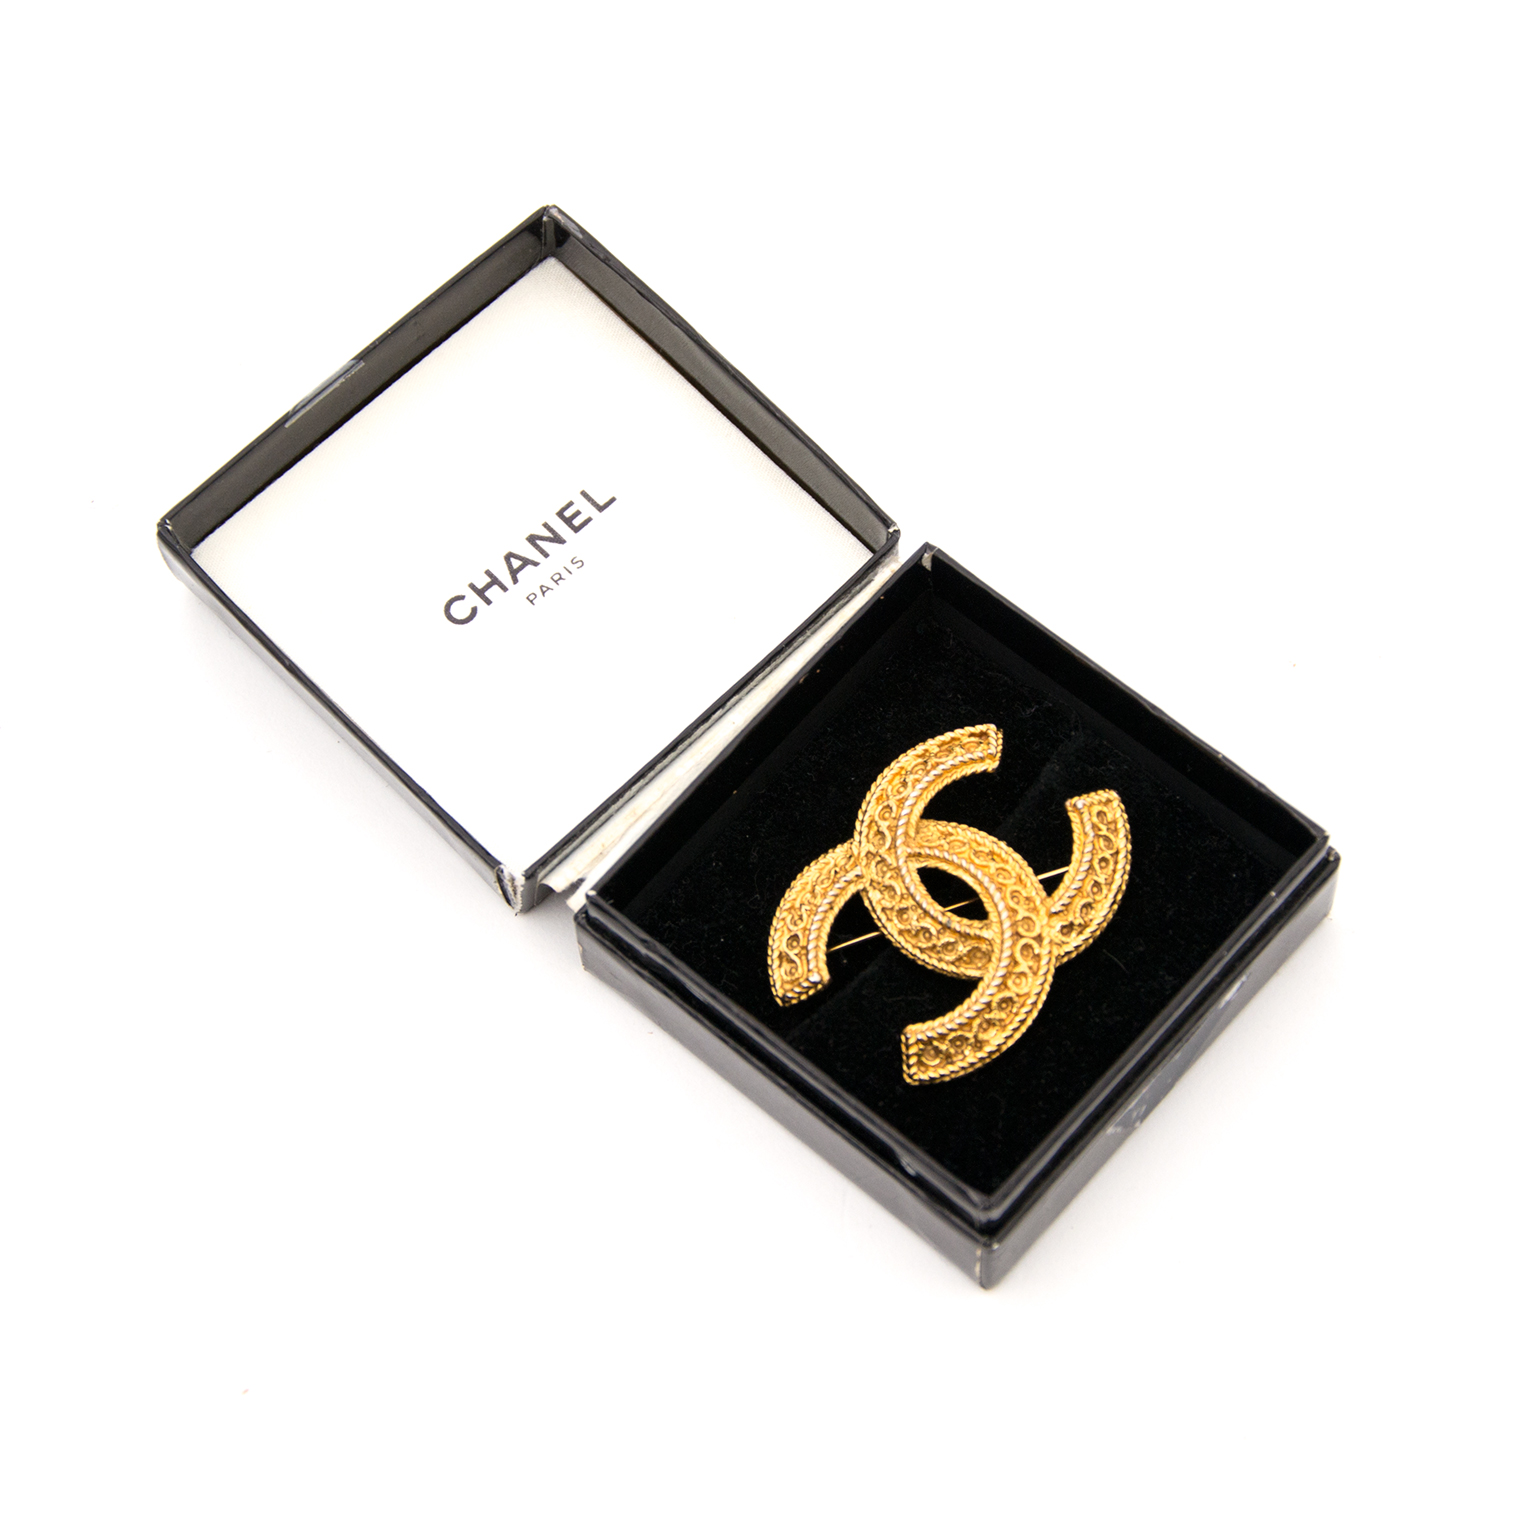 Are you looking for an authentic Chanel Gold Brooch? Buy and sell your secondhand designer handbags.